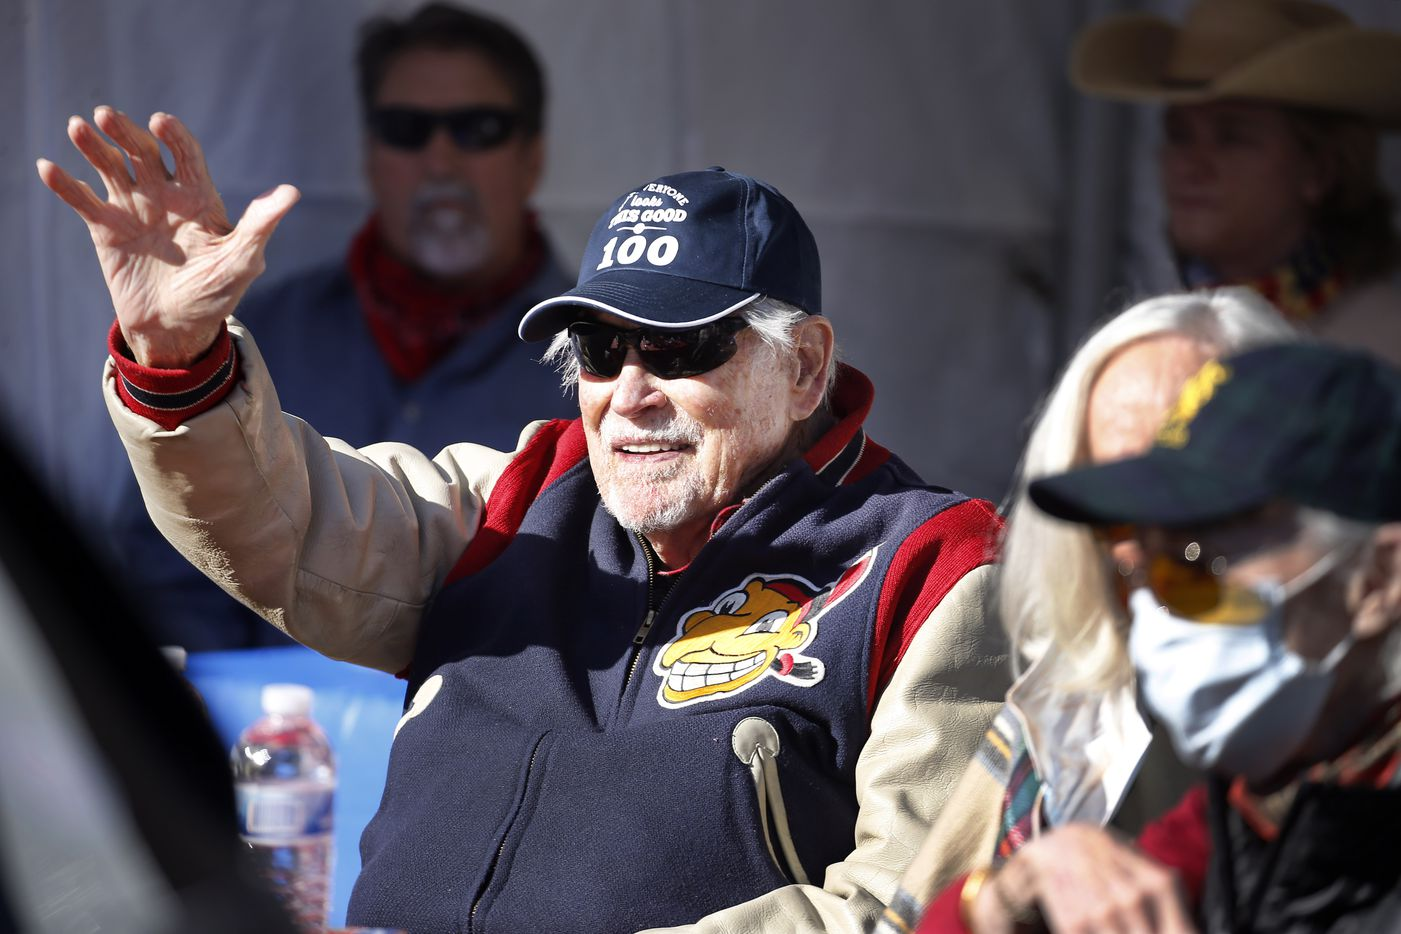 Eddie Robinson, the oldest living former MLB player, waves to friends who delivery an early 100th birthday wish. He will turn 100 on December 15th. To share his birthday with friends, his family orchestrated a drive-by celebration outside his Fort Worth home, Saturday, December 12, 2020. His 65 year career started by playing for the Cleveland Indians and serving in World War II. Later he went on to play for several other teams before presiding over three winning seasons as the Texas Rangers general manager. He is still in great physical health as he waves to passersby, including former teammates, GM Tom Grieve and U.S. congressman and neighbor Marc Veasey. (Tom Fox/The Dallas Morning News)